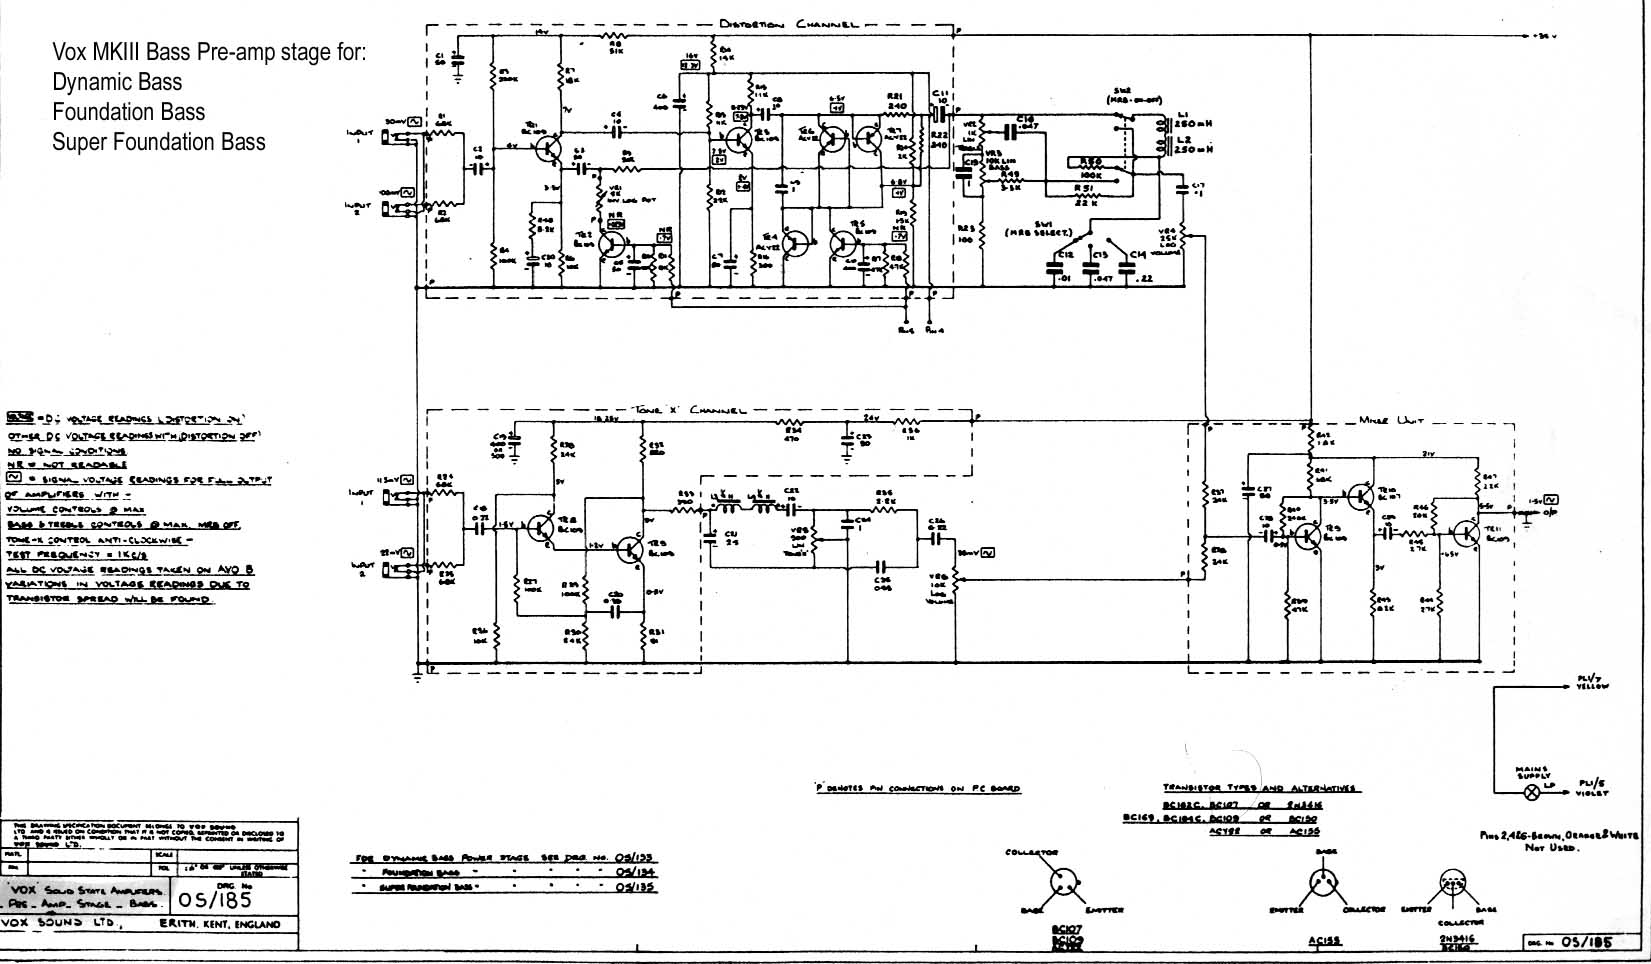 Enchanting preamp to amp connection diagram gift wiring diagram vox vintage circuit diagrams asfbconference2016